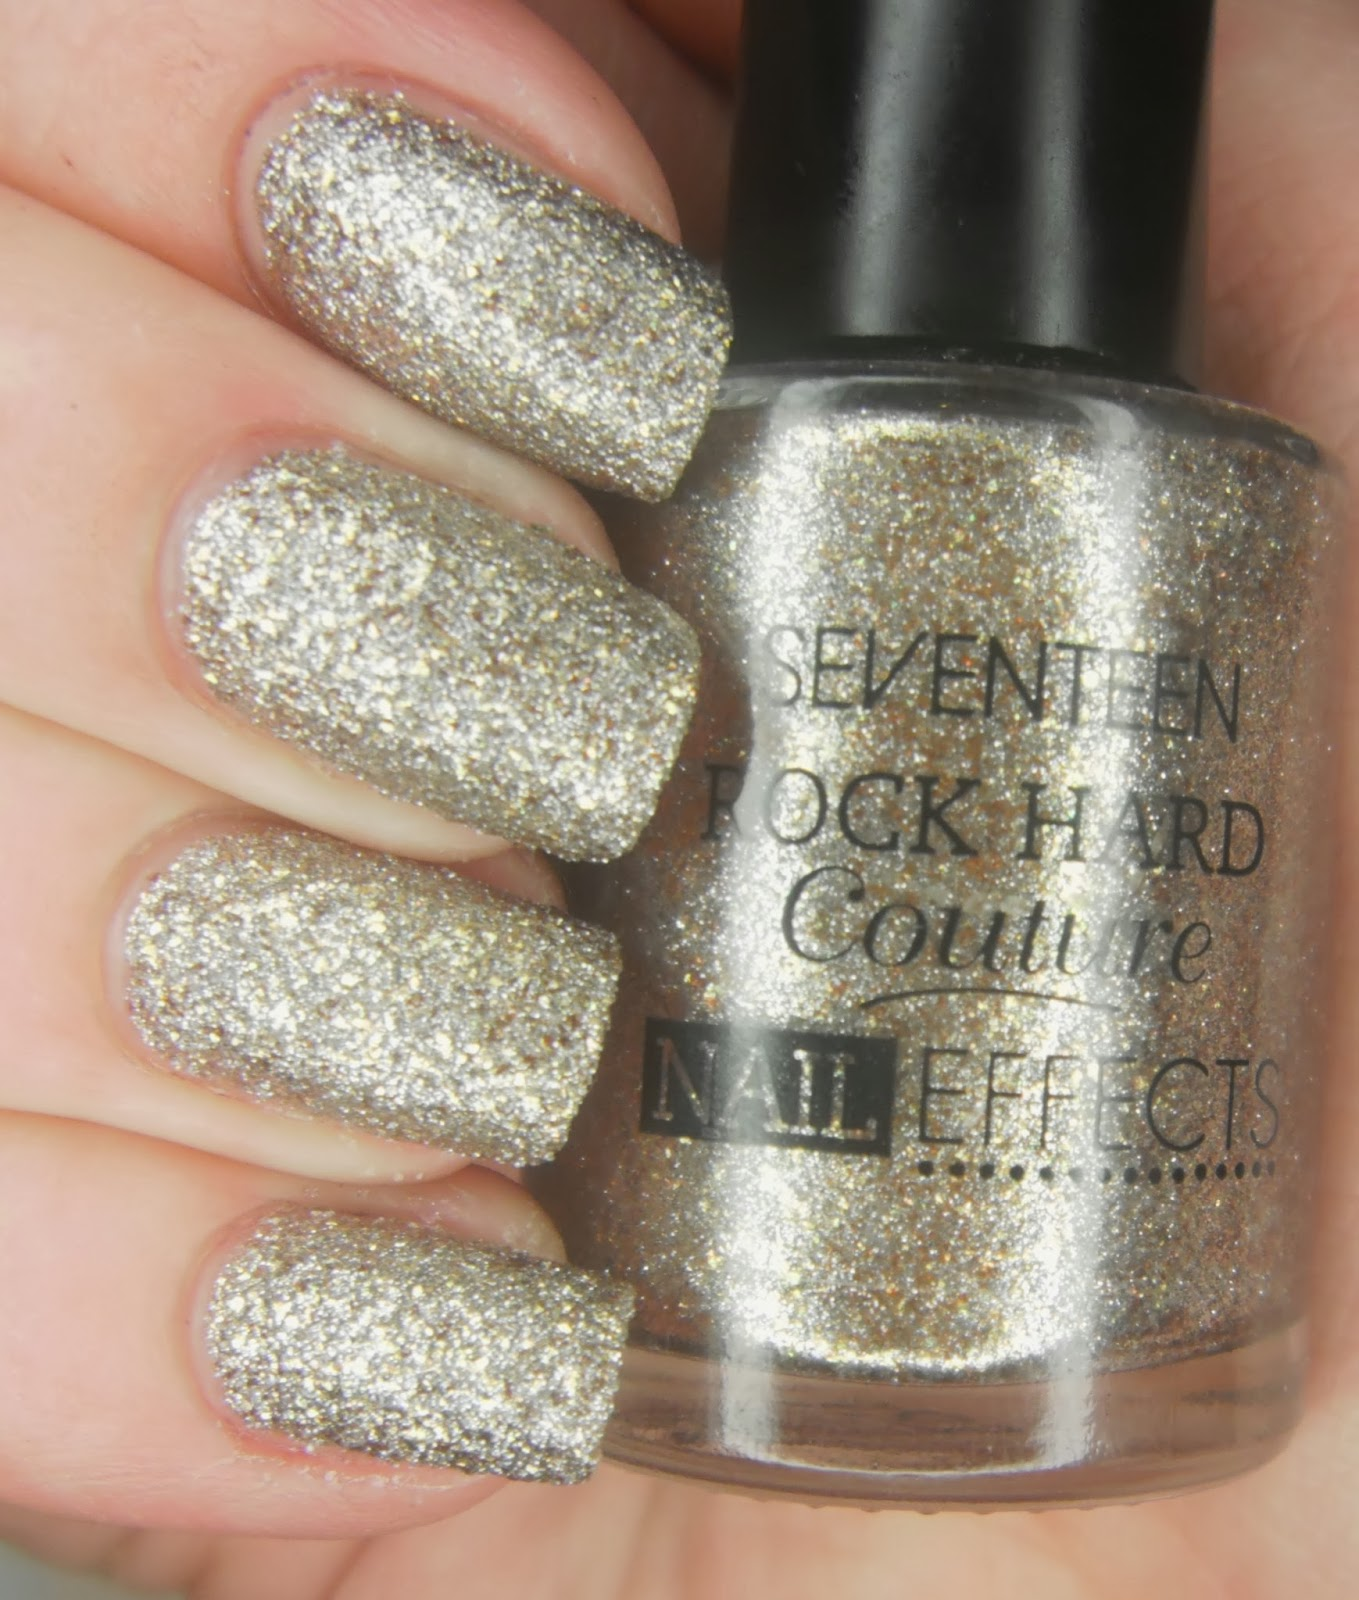 Seven Rock Hard Couture Nail Effects